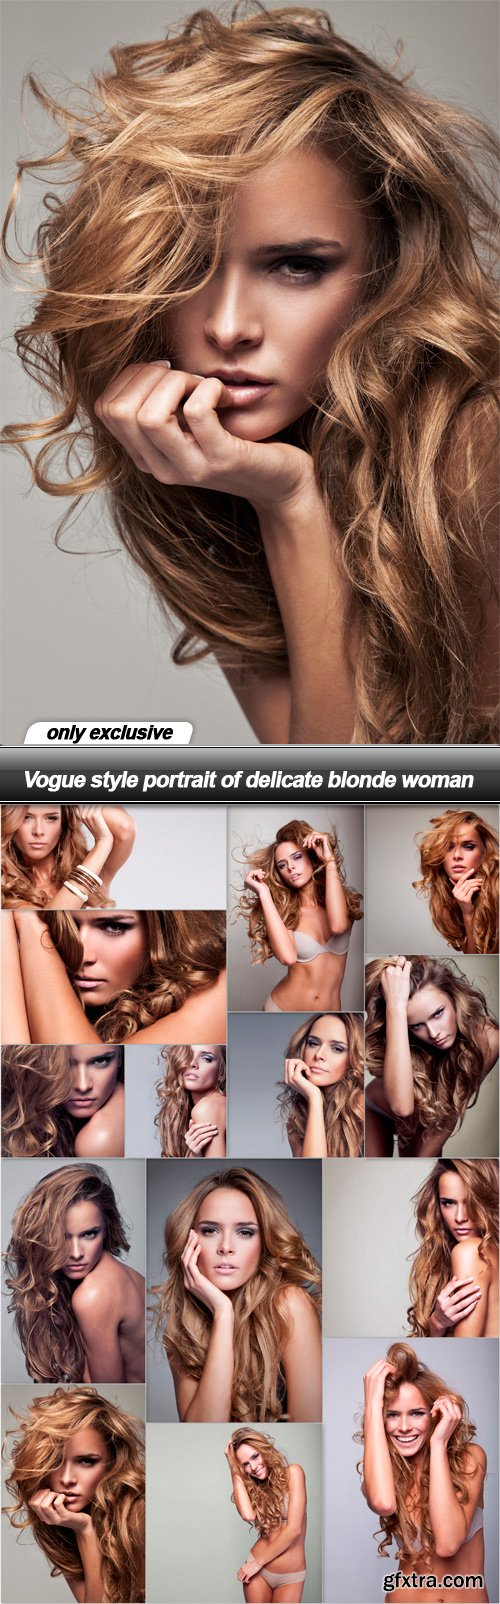 Vogue style portrait of delicate blonde woman - 14 UHQ JPEG